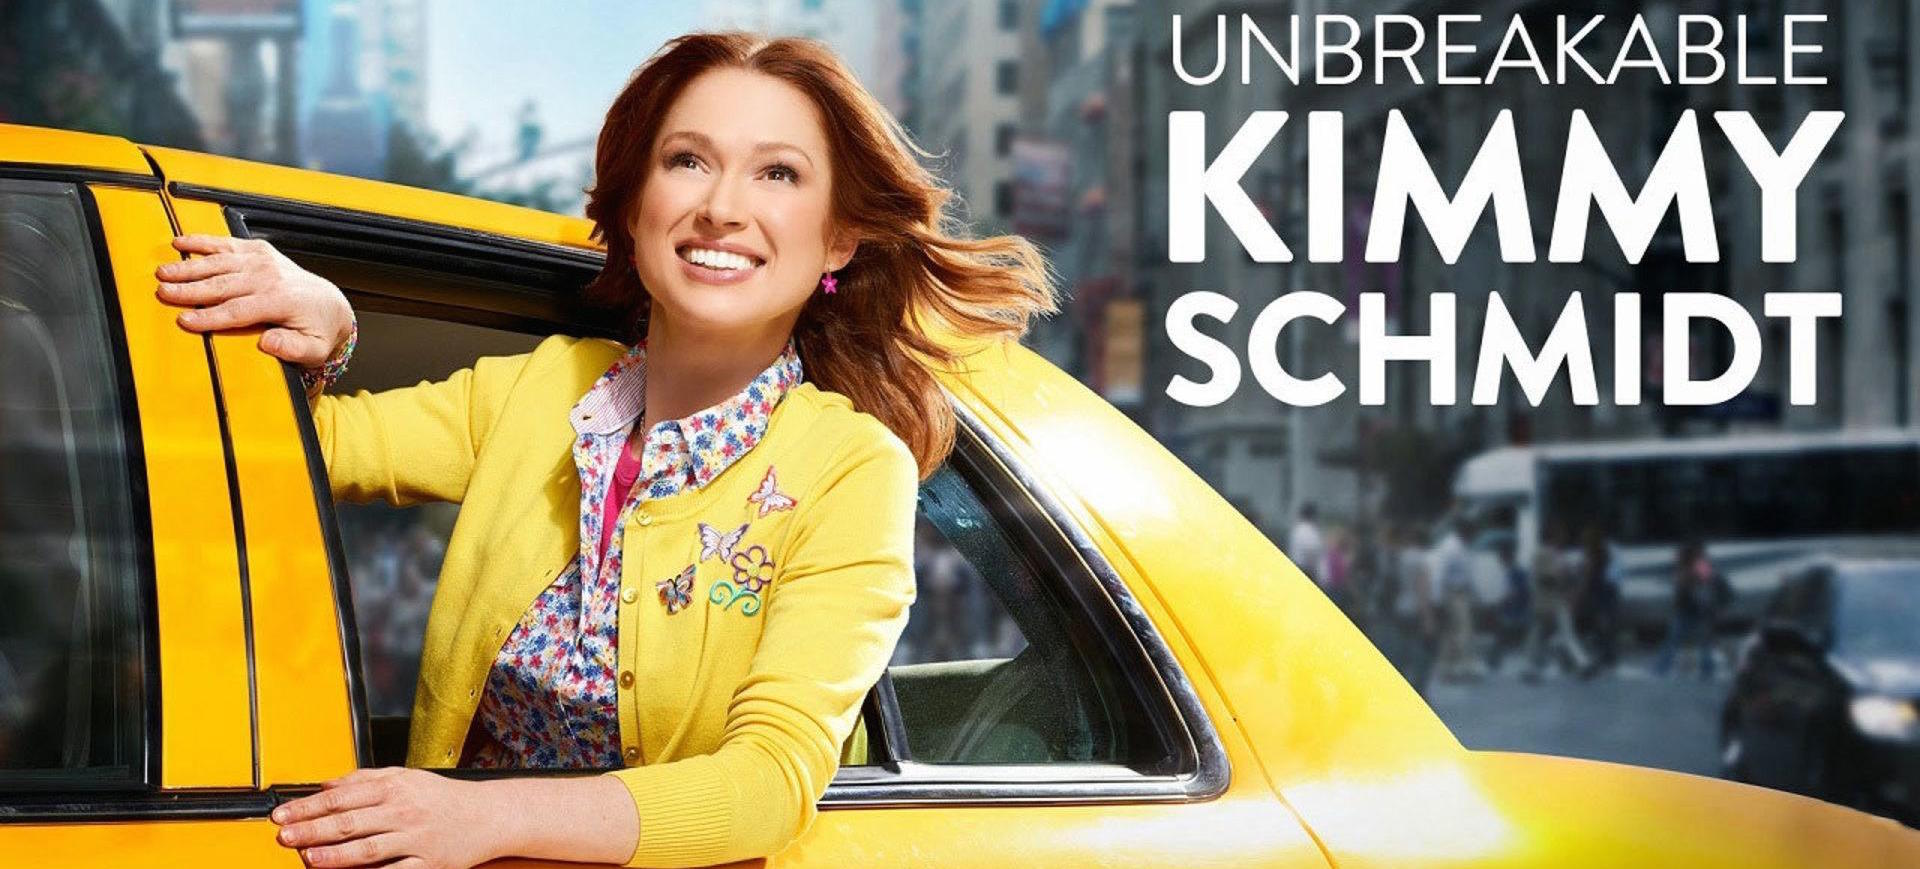 The Unbreakable Kimmy Schmidt on Netflix by Tina Fey